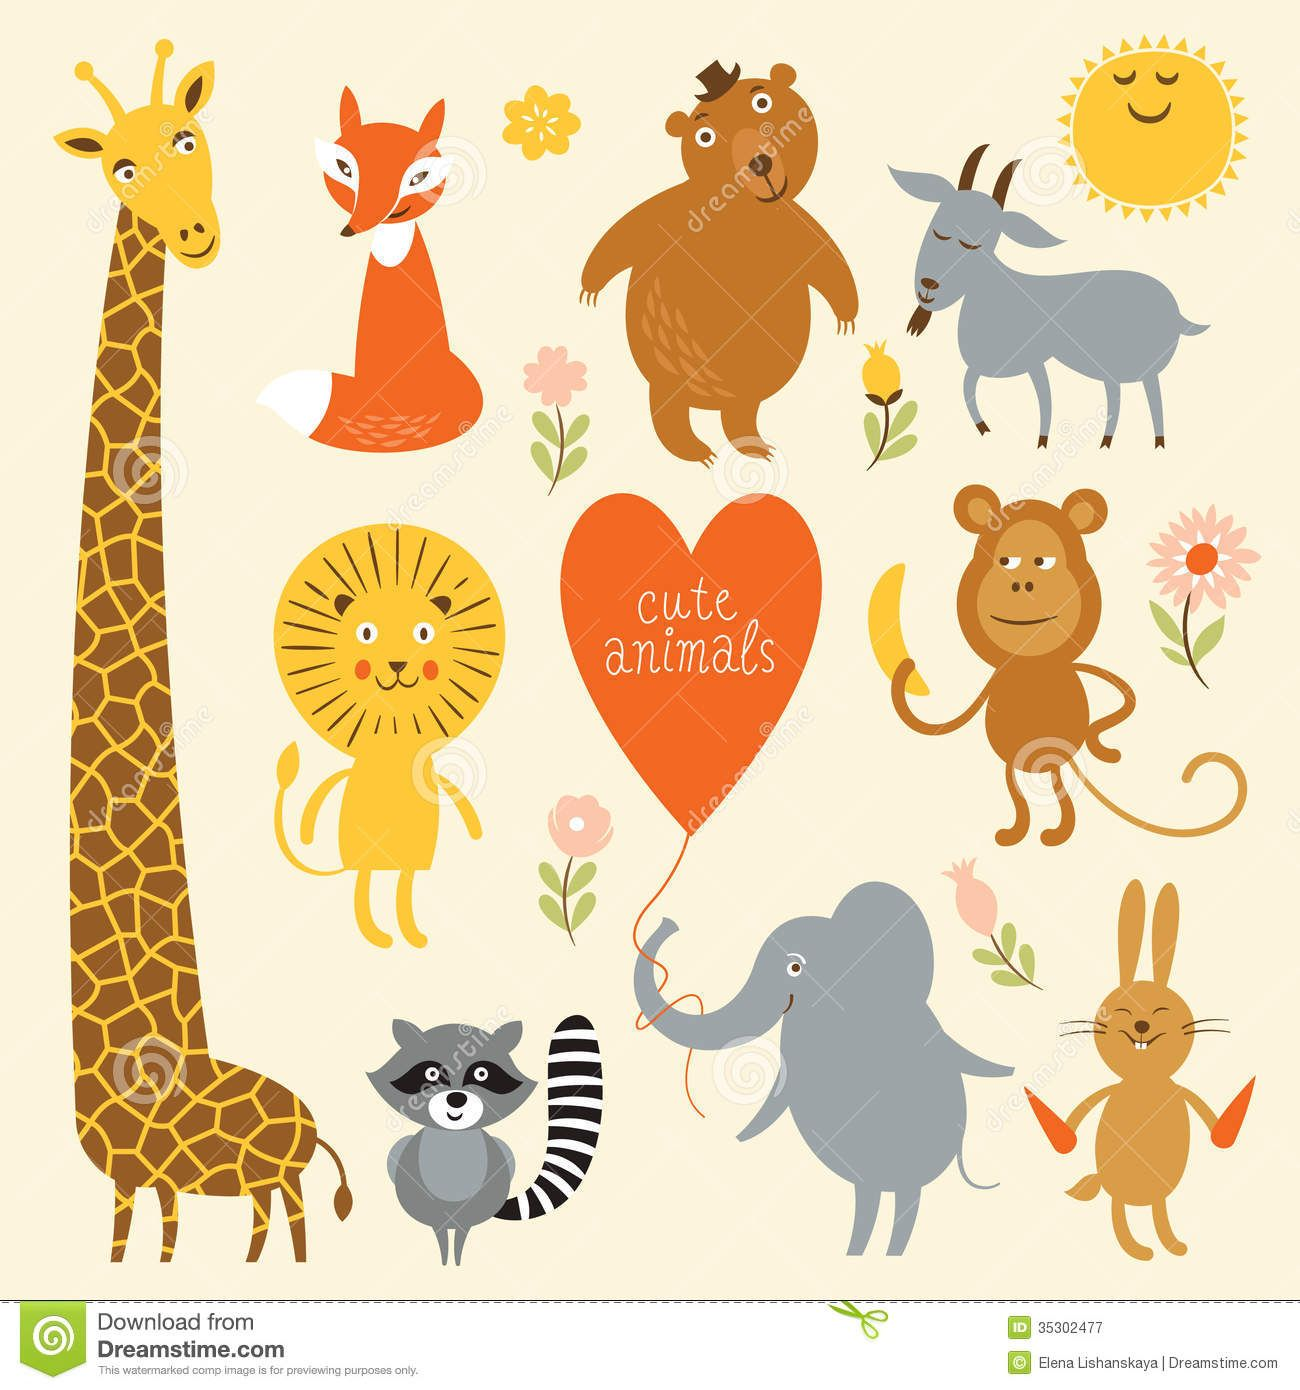 illustration of animals - Google Search